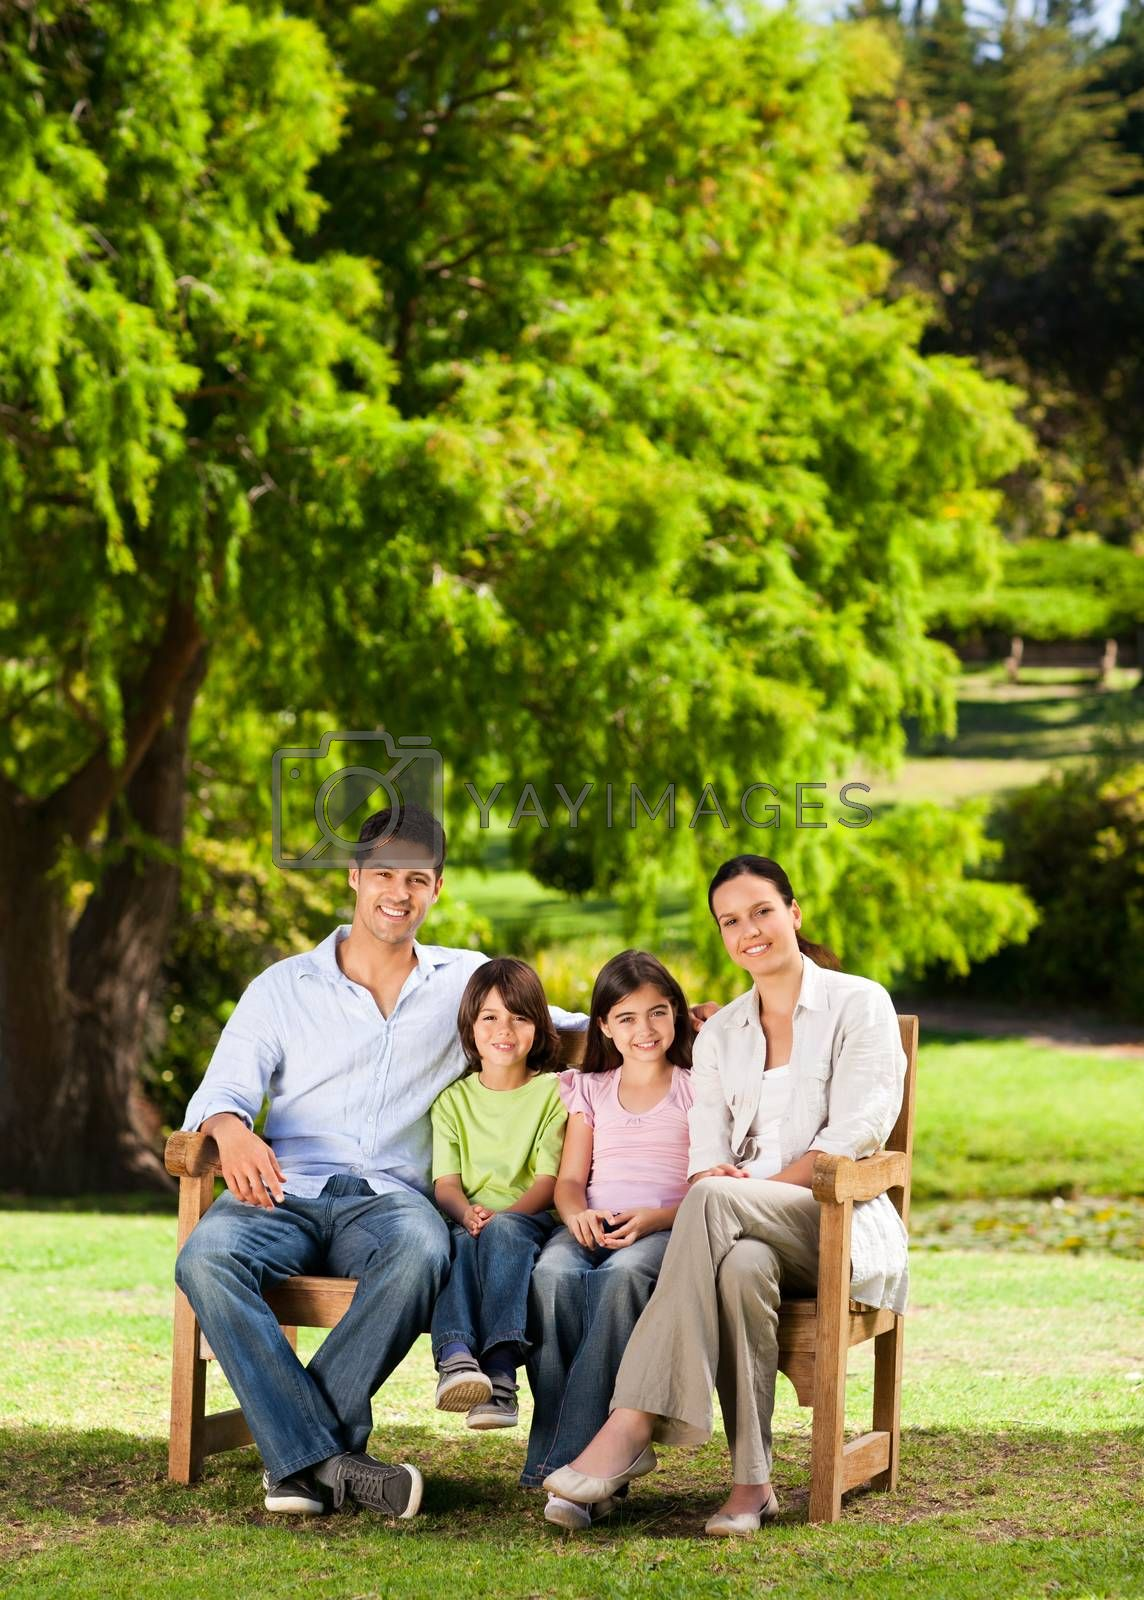 Family on the bench in a park